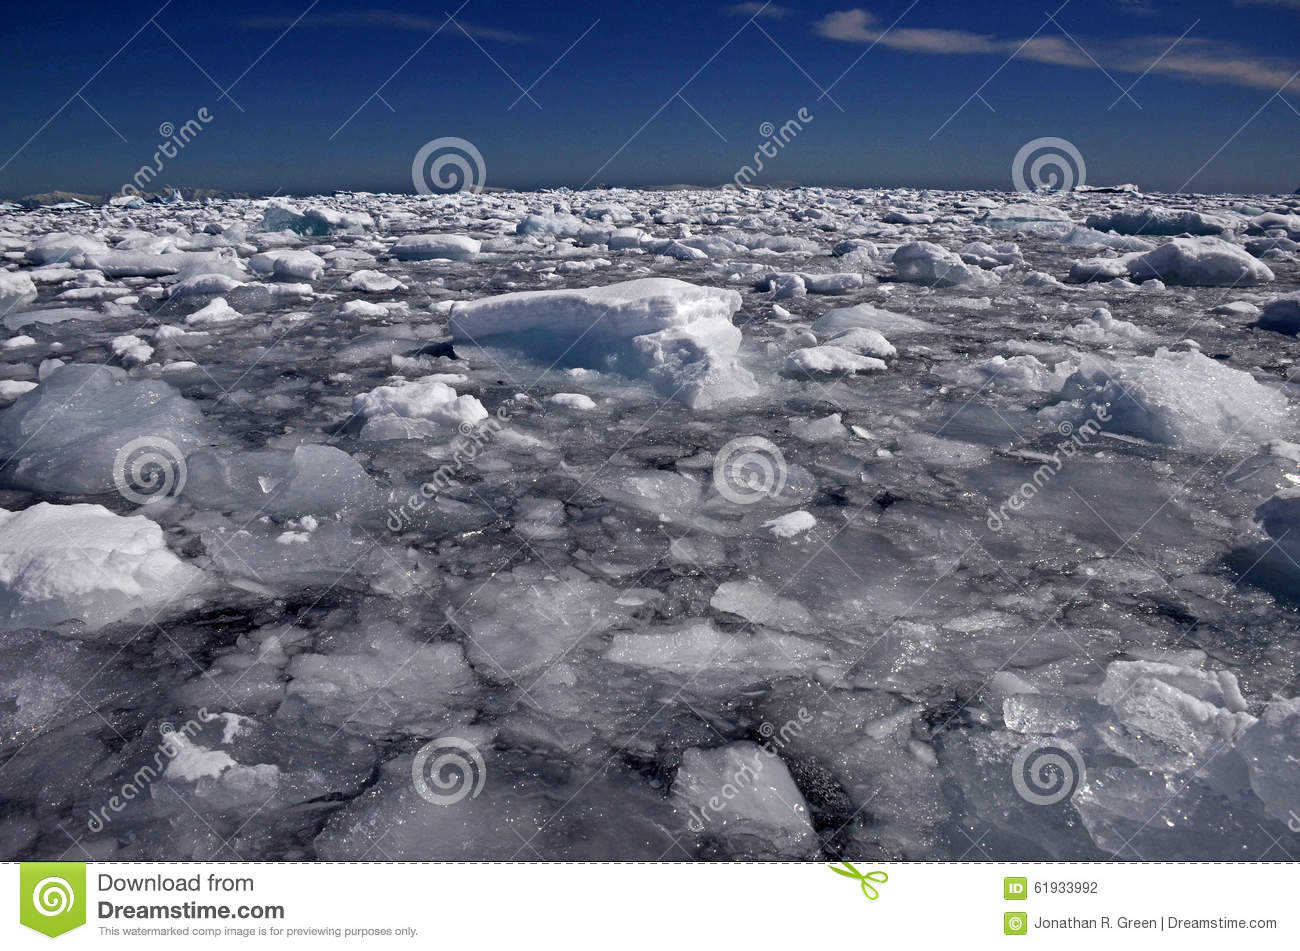 Icebergs and brash ice antarctica stock photo image for Covers from the ocean